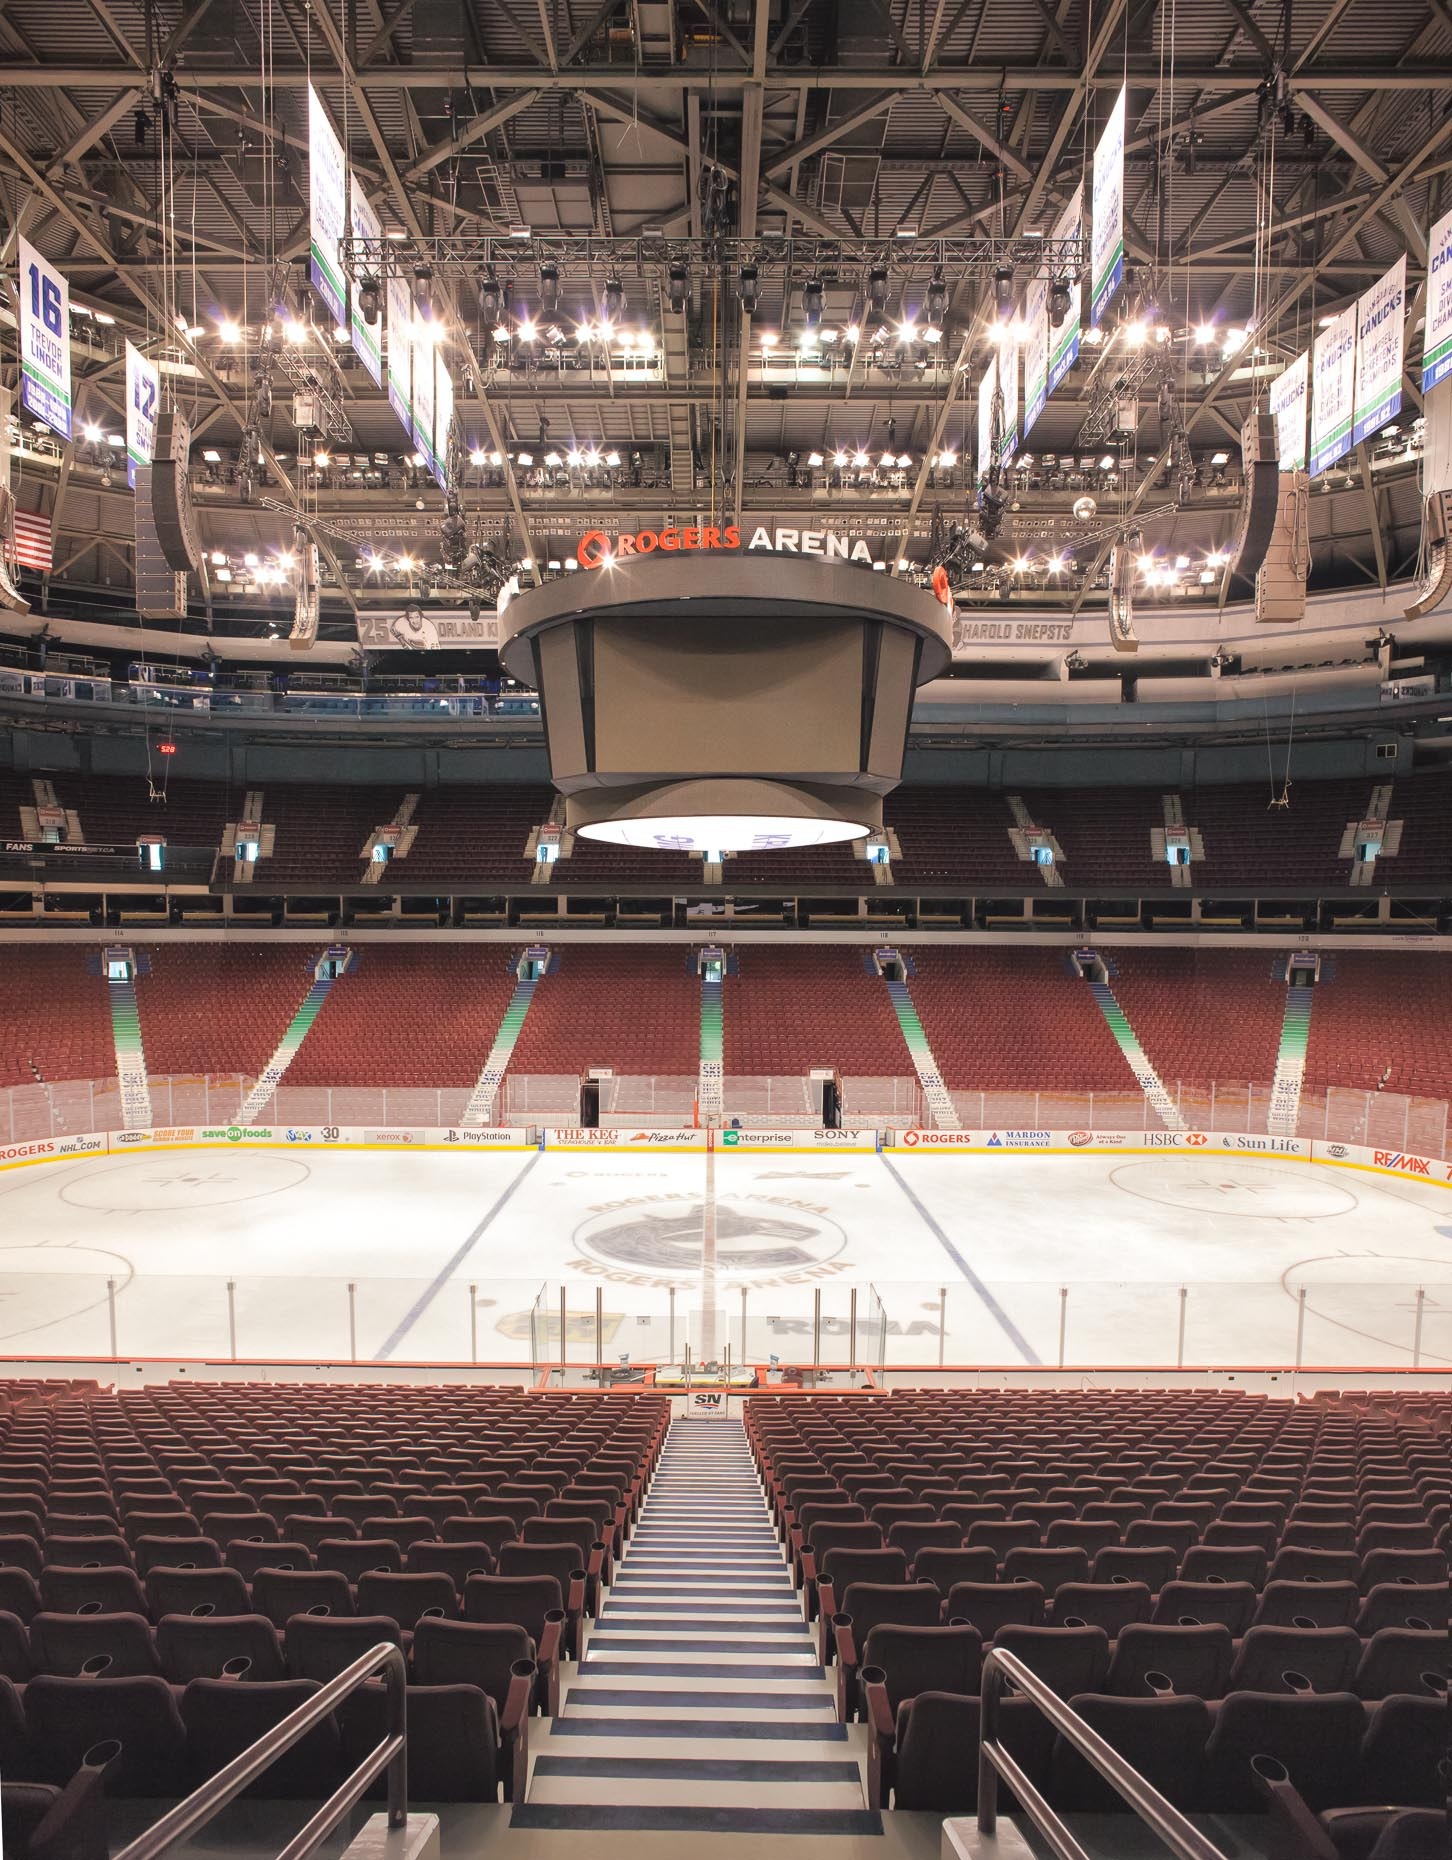 Rogers Arena7